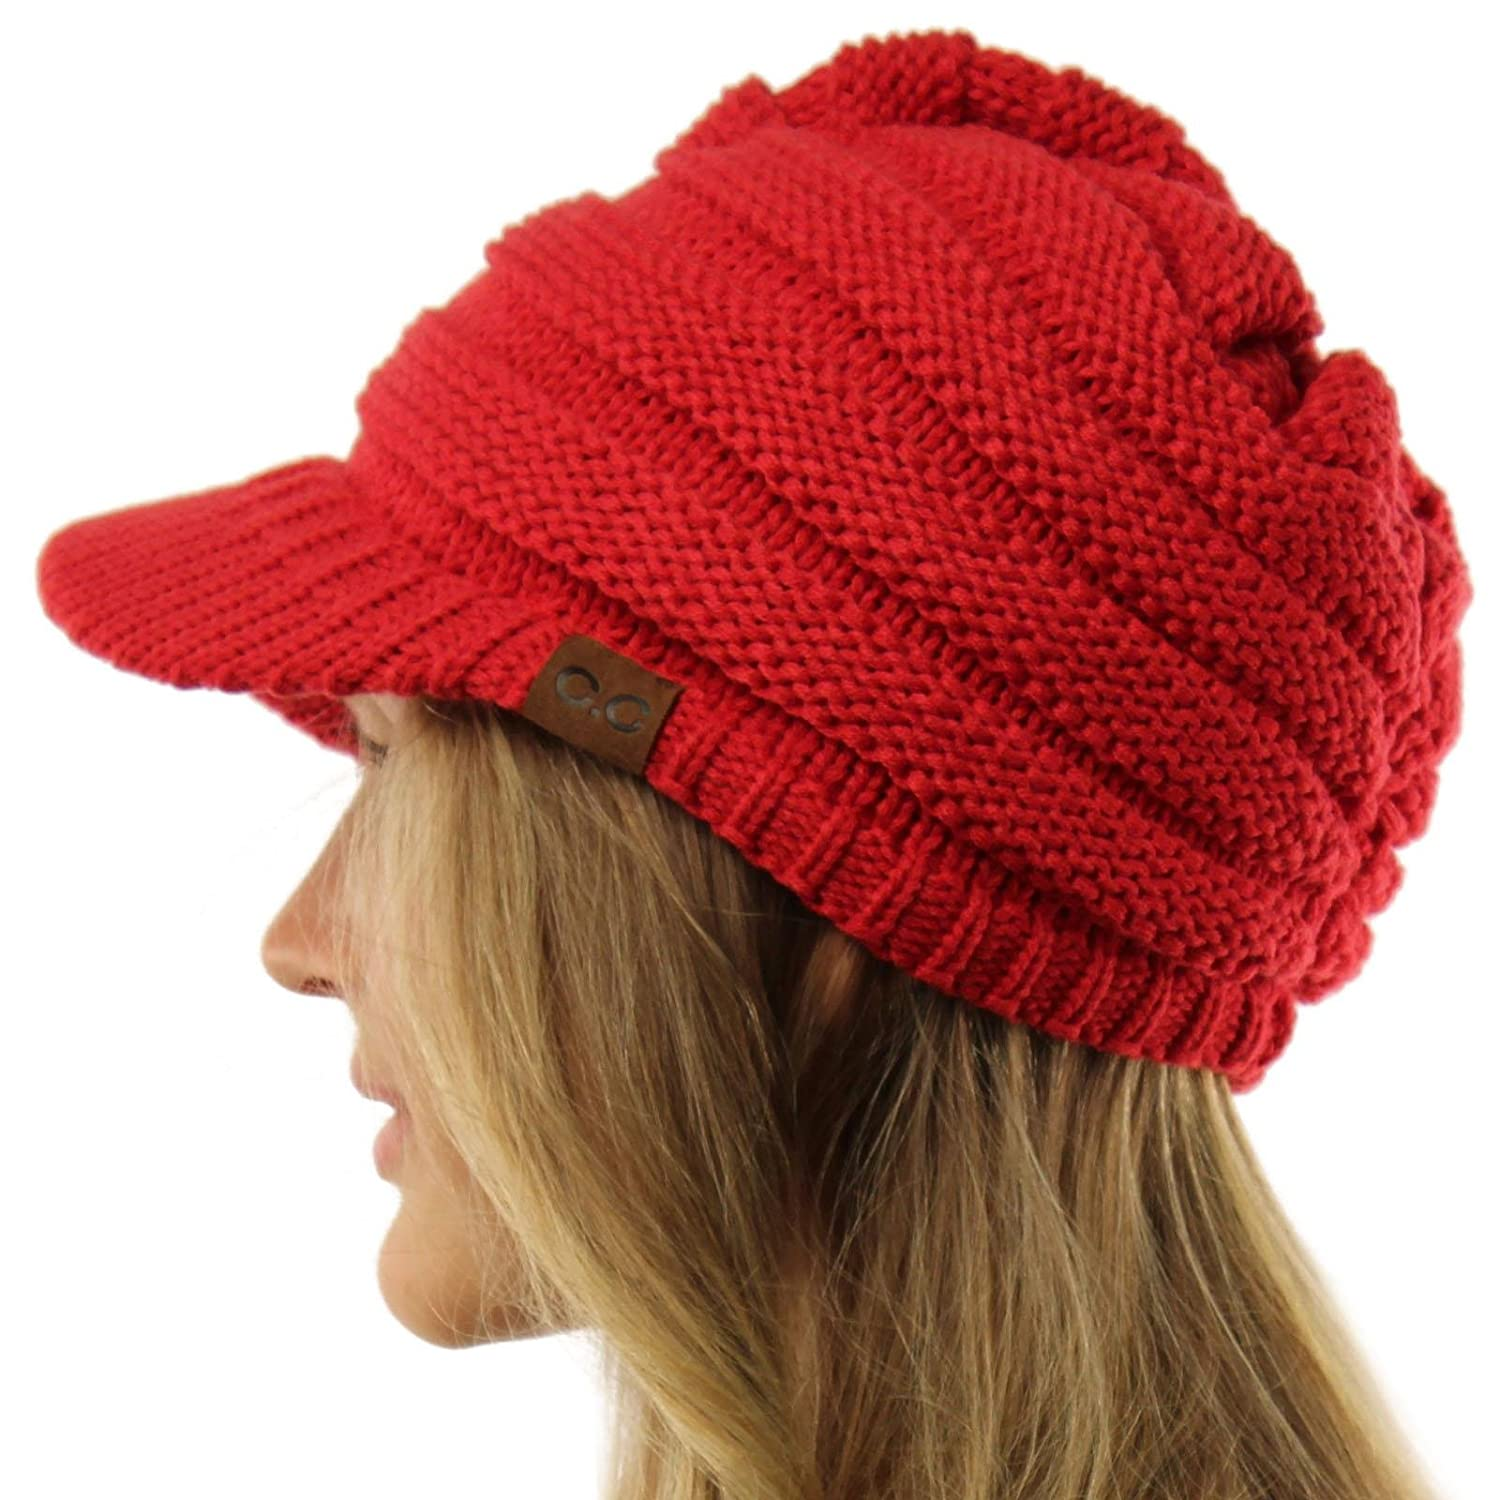 Unisex Winter Thick Chunky Stretch Knit Beanie Skully Visor Jeep Hat Cap  Red M at Amazon Men s Clothing store  2b50f69954